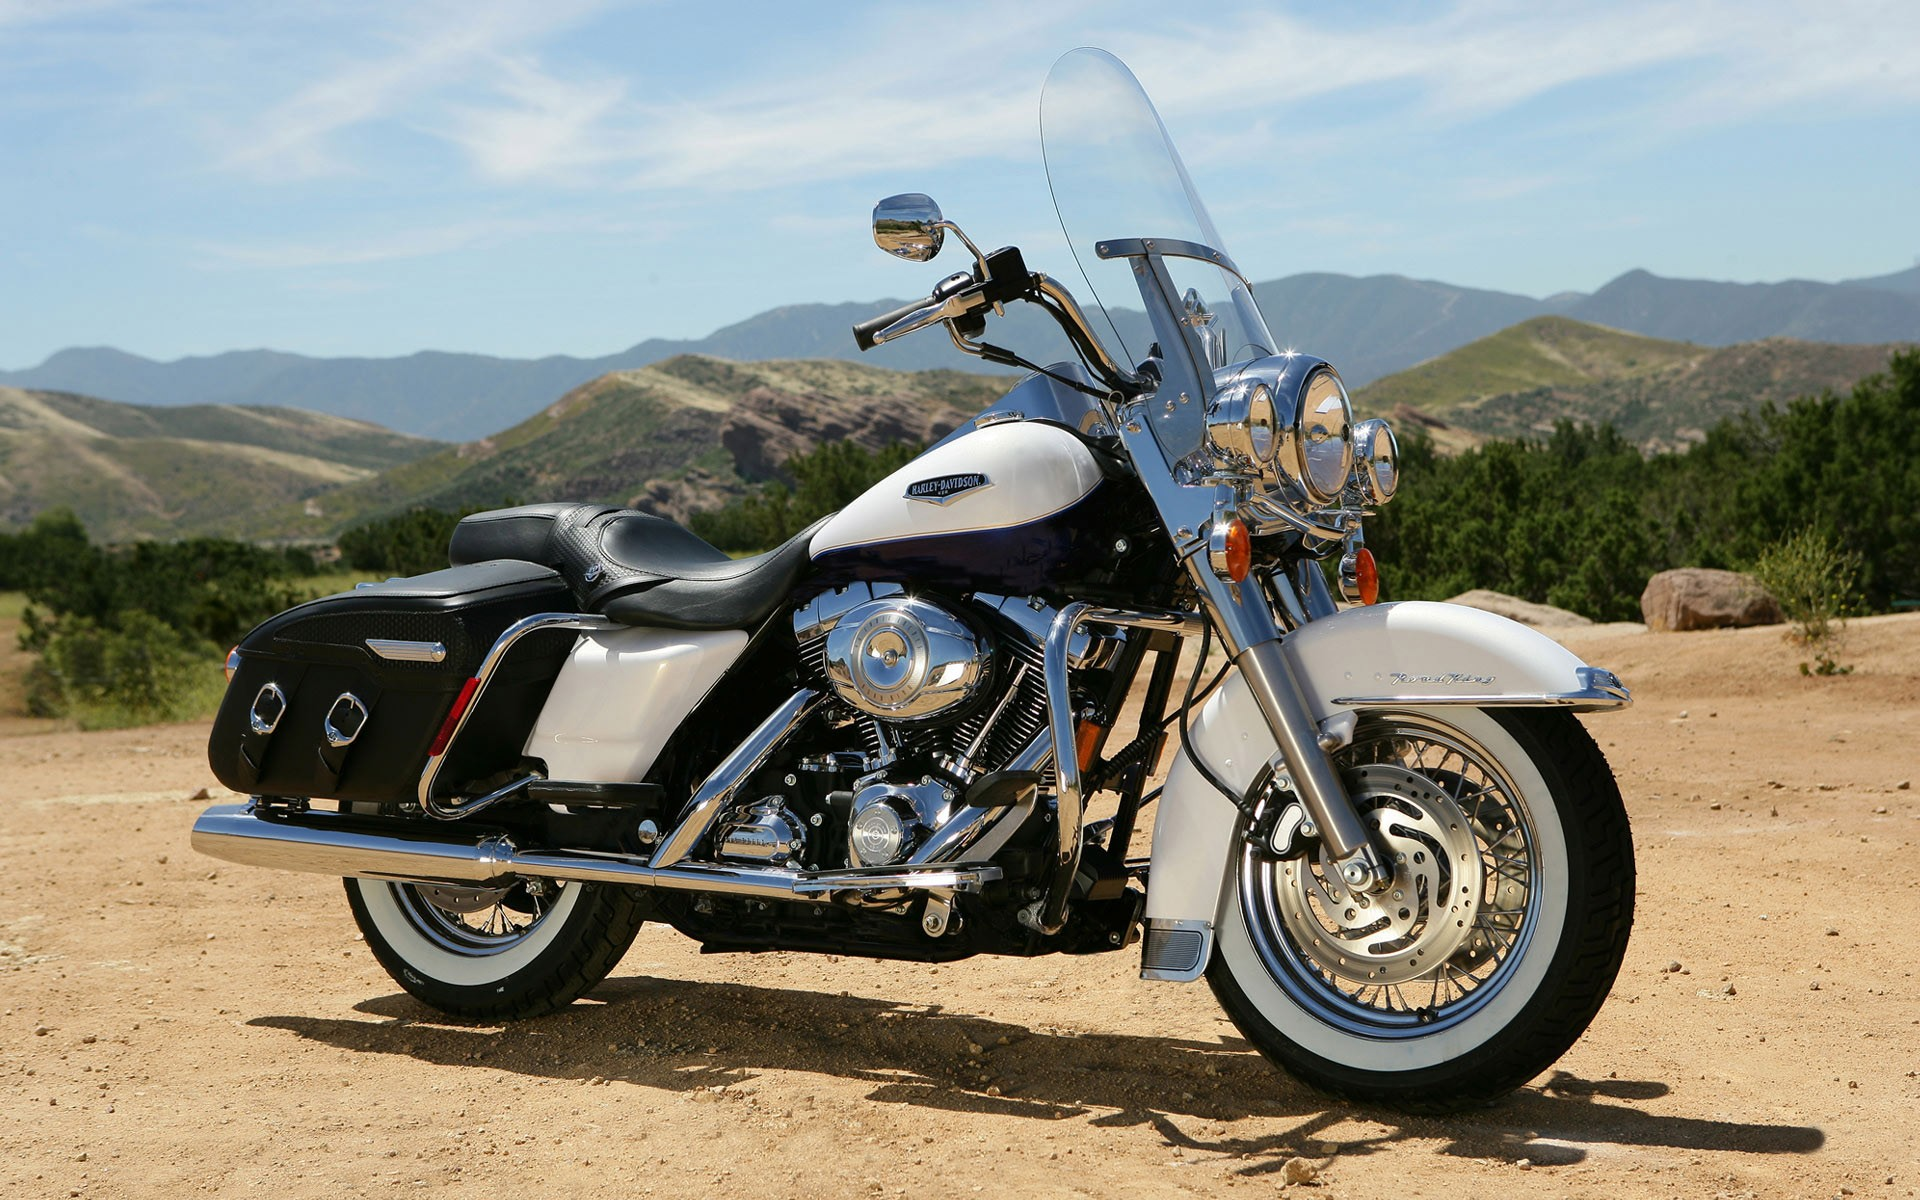 Harley Davidson Wallpapers High Quality Download Free